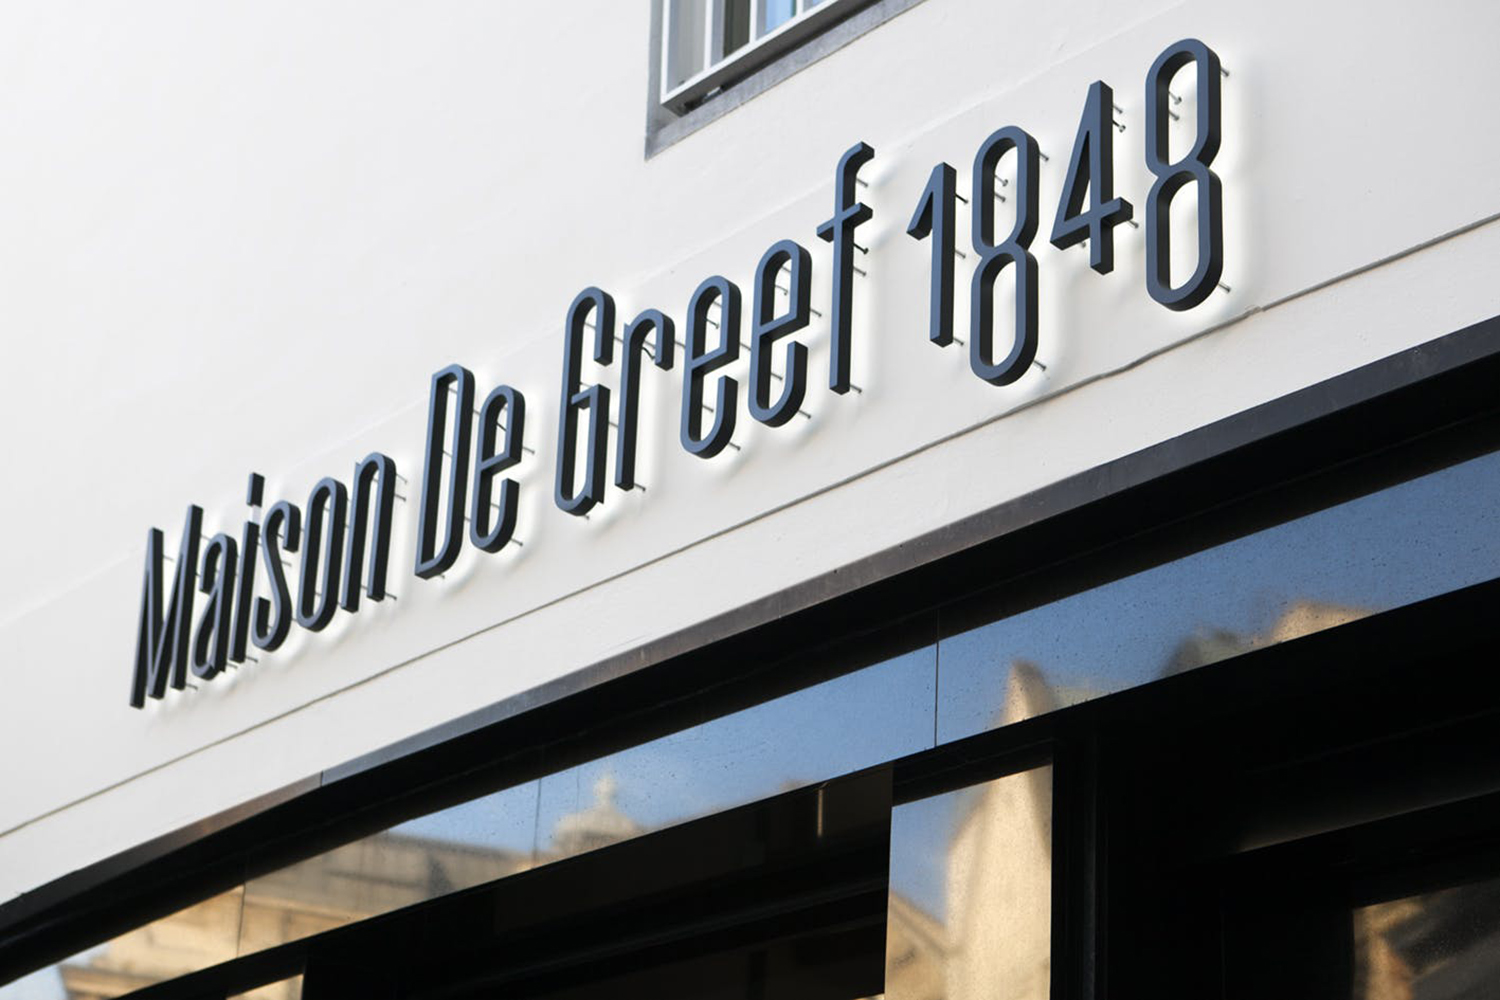 Logotype and signage by Base Design for high-end jewellery brand, expert watchmaker and retailer Maison De Greef 1848